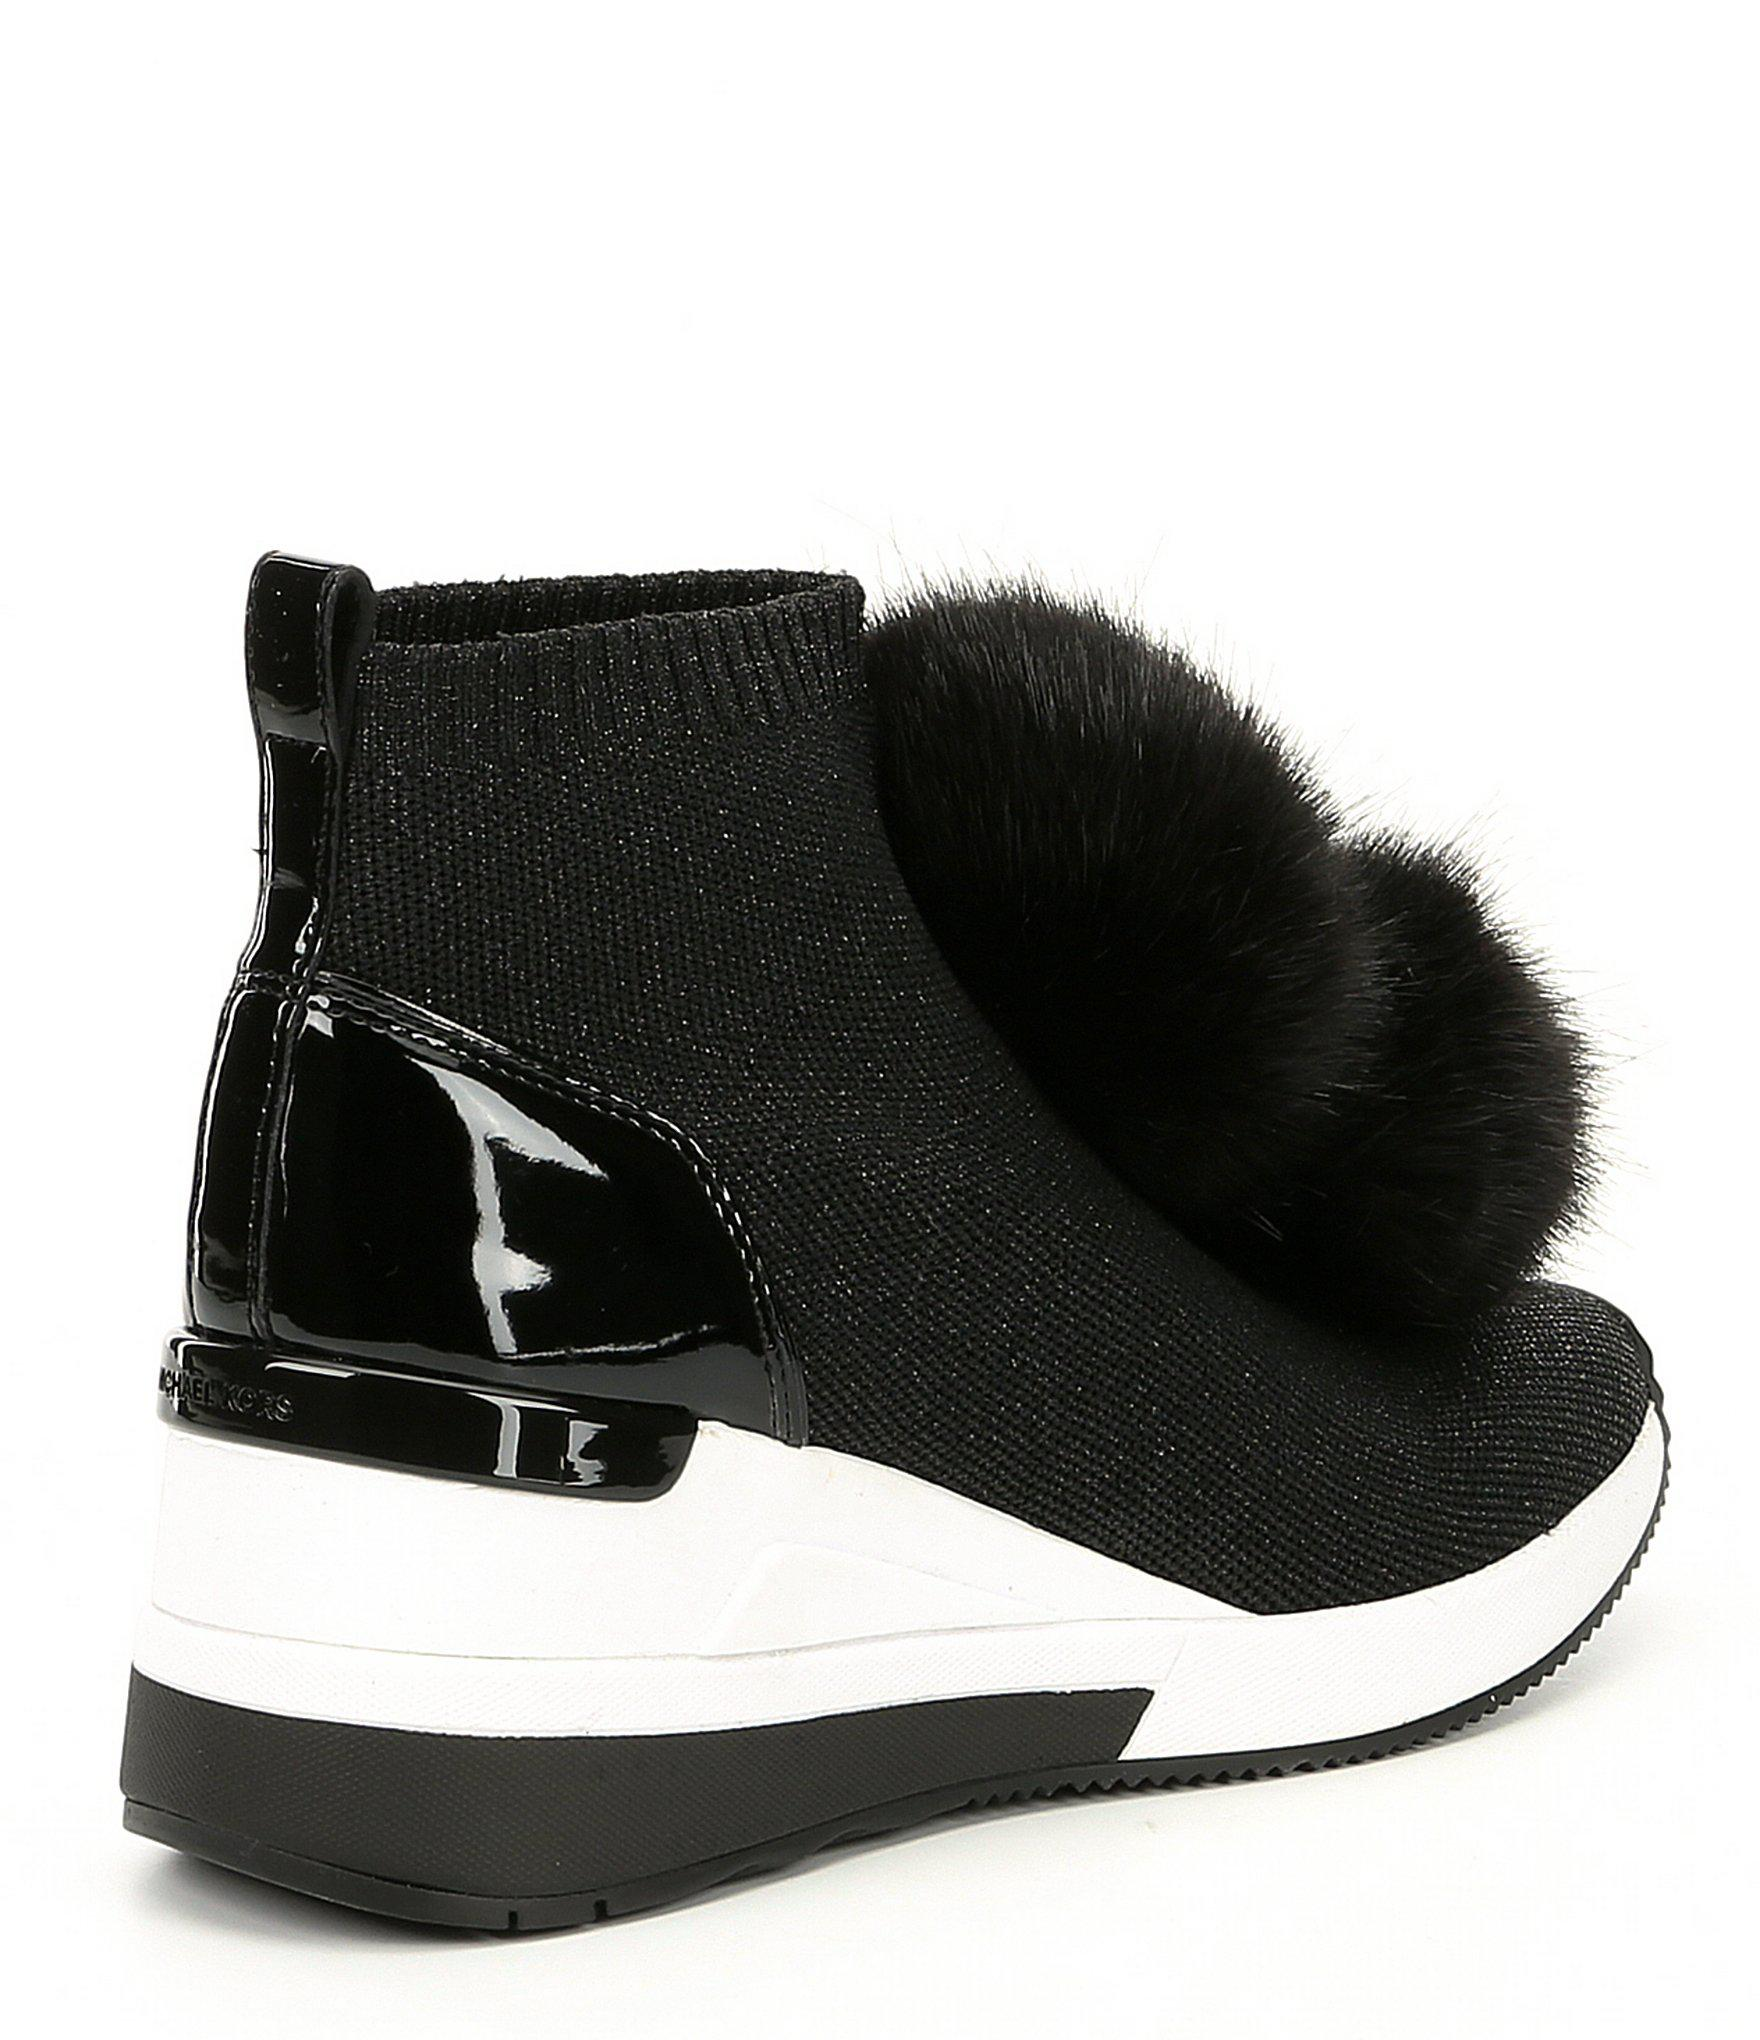 9643a2a269b Lyst - MICHAEL Michael Kors Skyler Wedge Sneaker Booties in Black